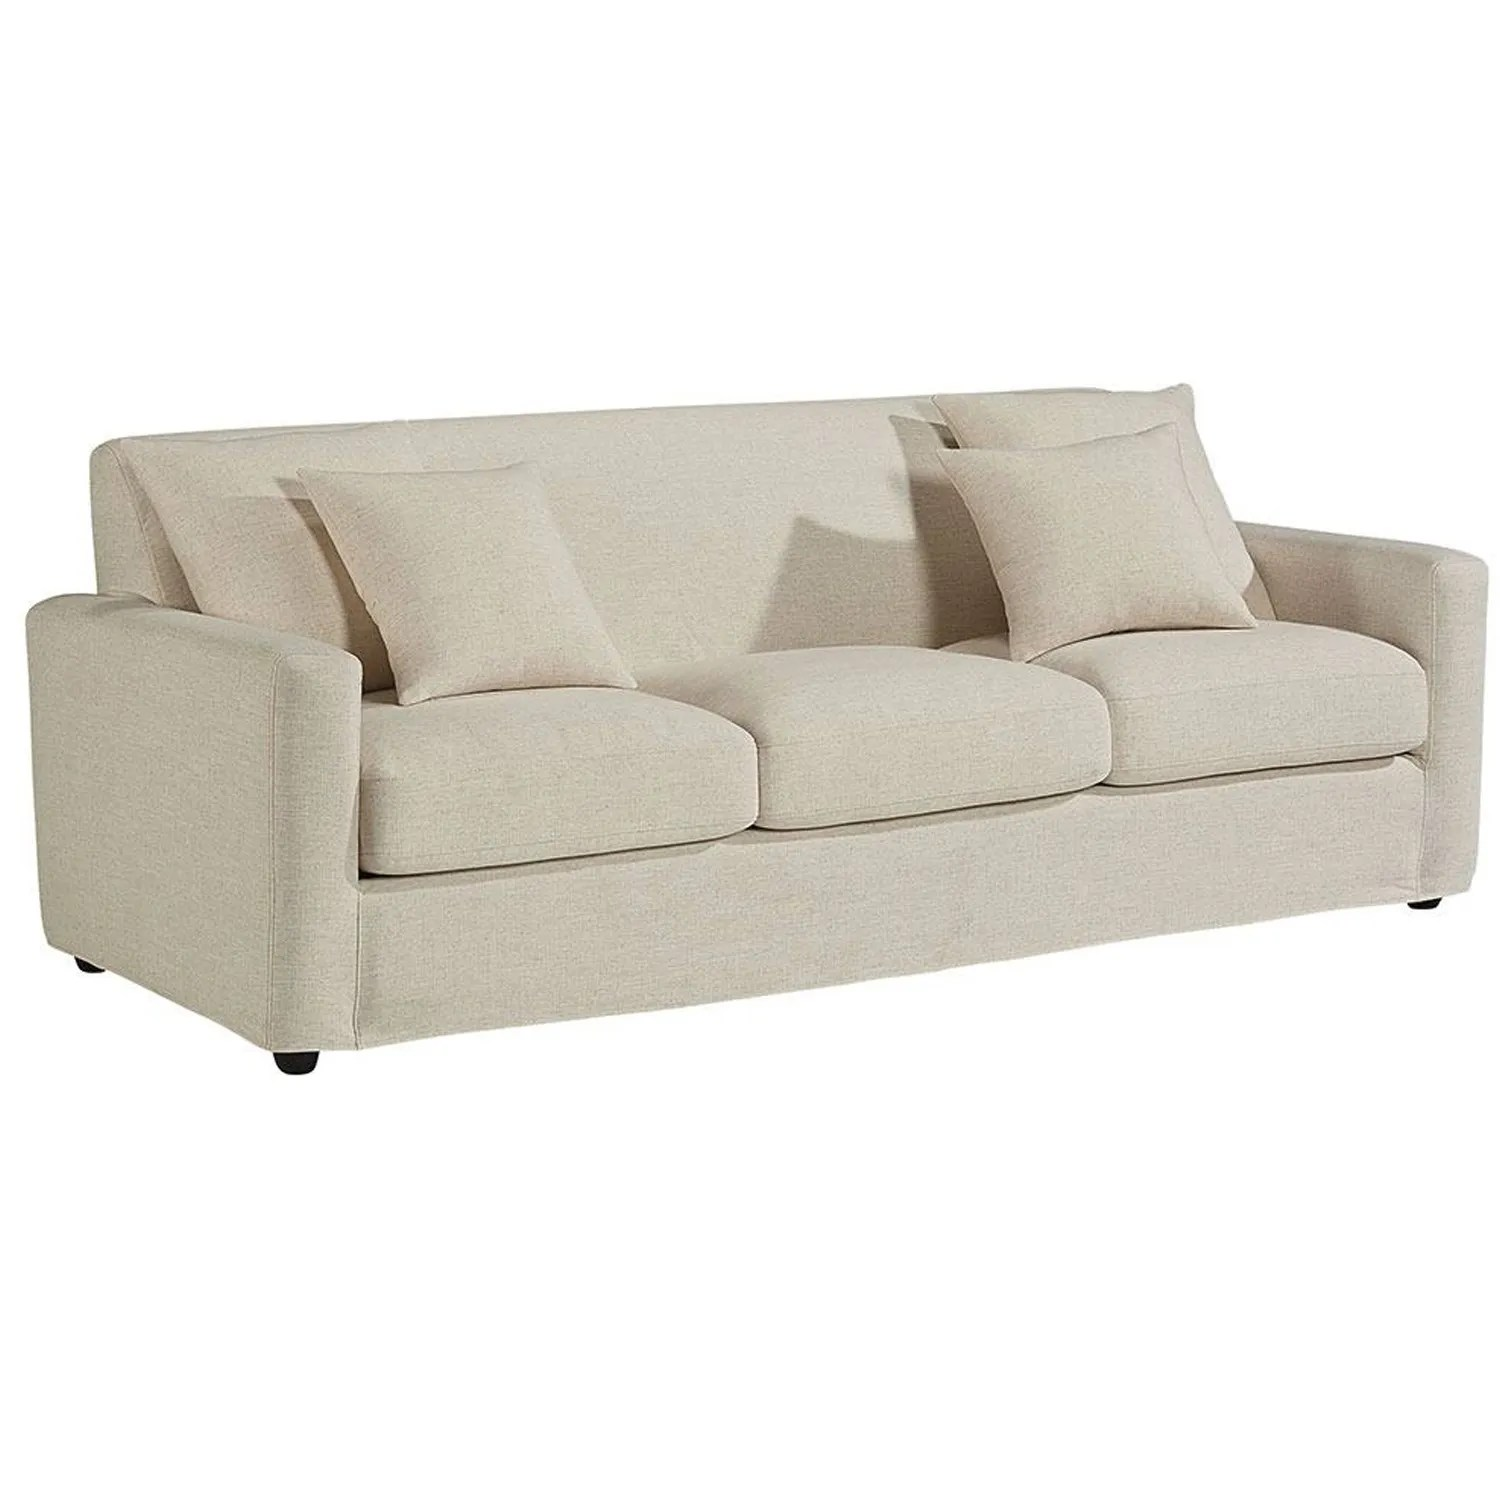 closeout living room furniture apartment therapy office benchmark sofa sofas clearance center wg r